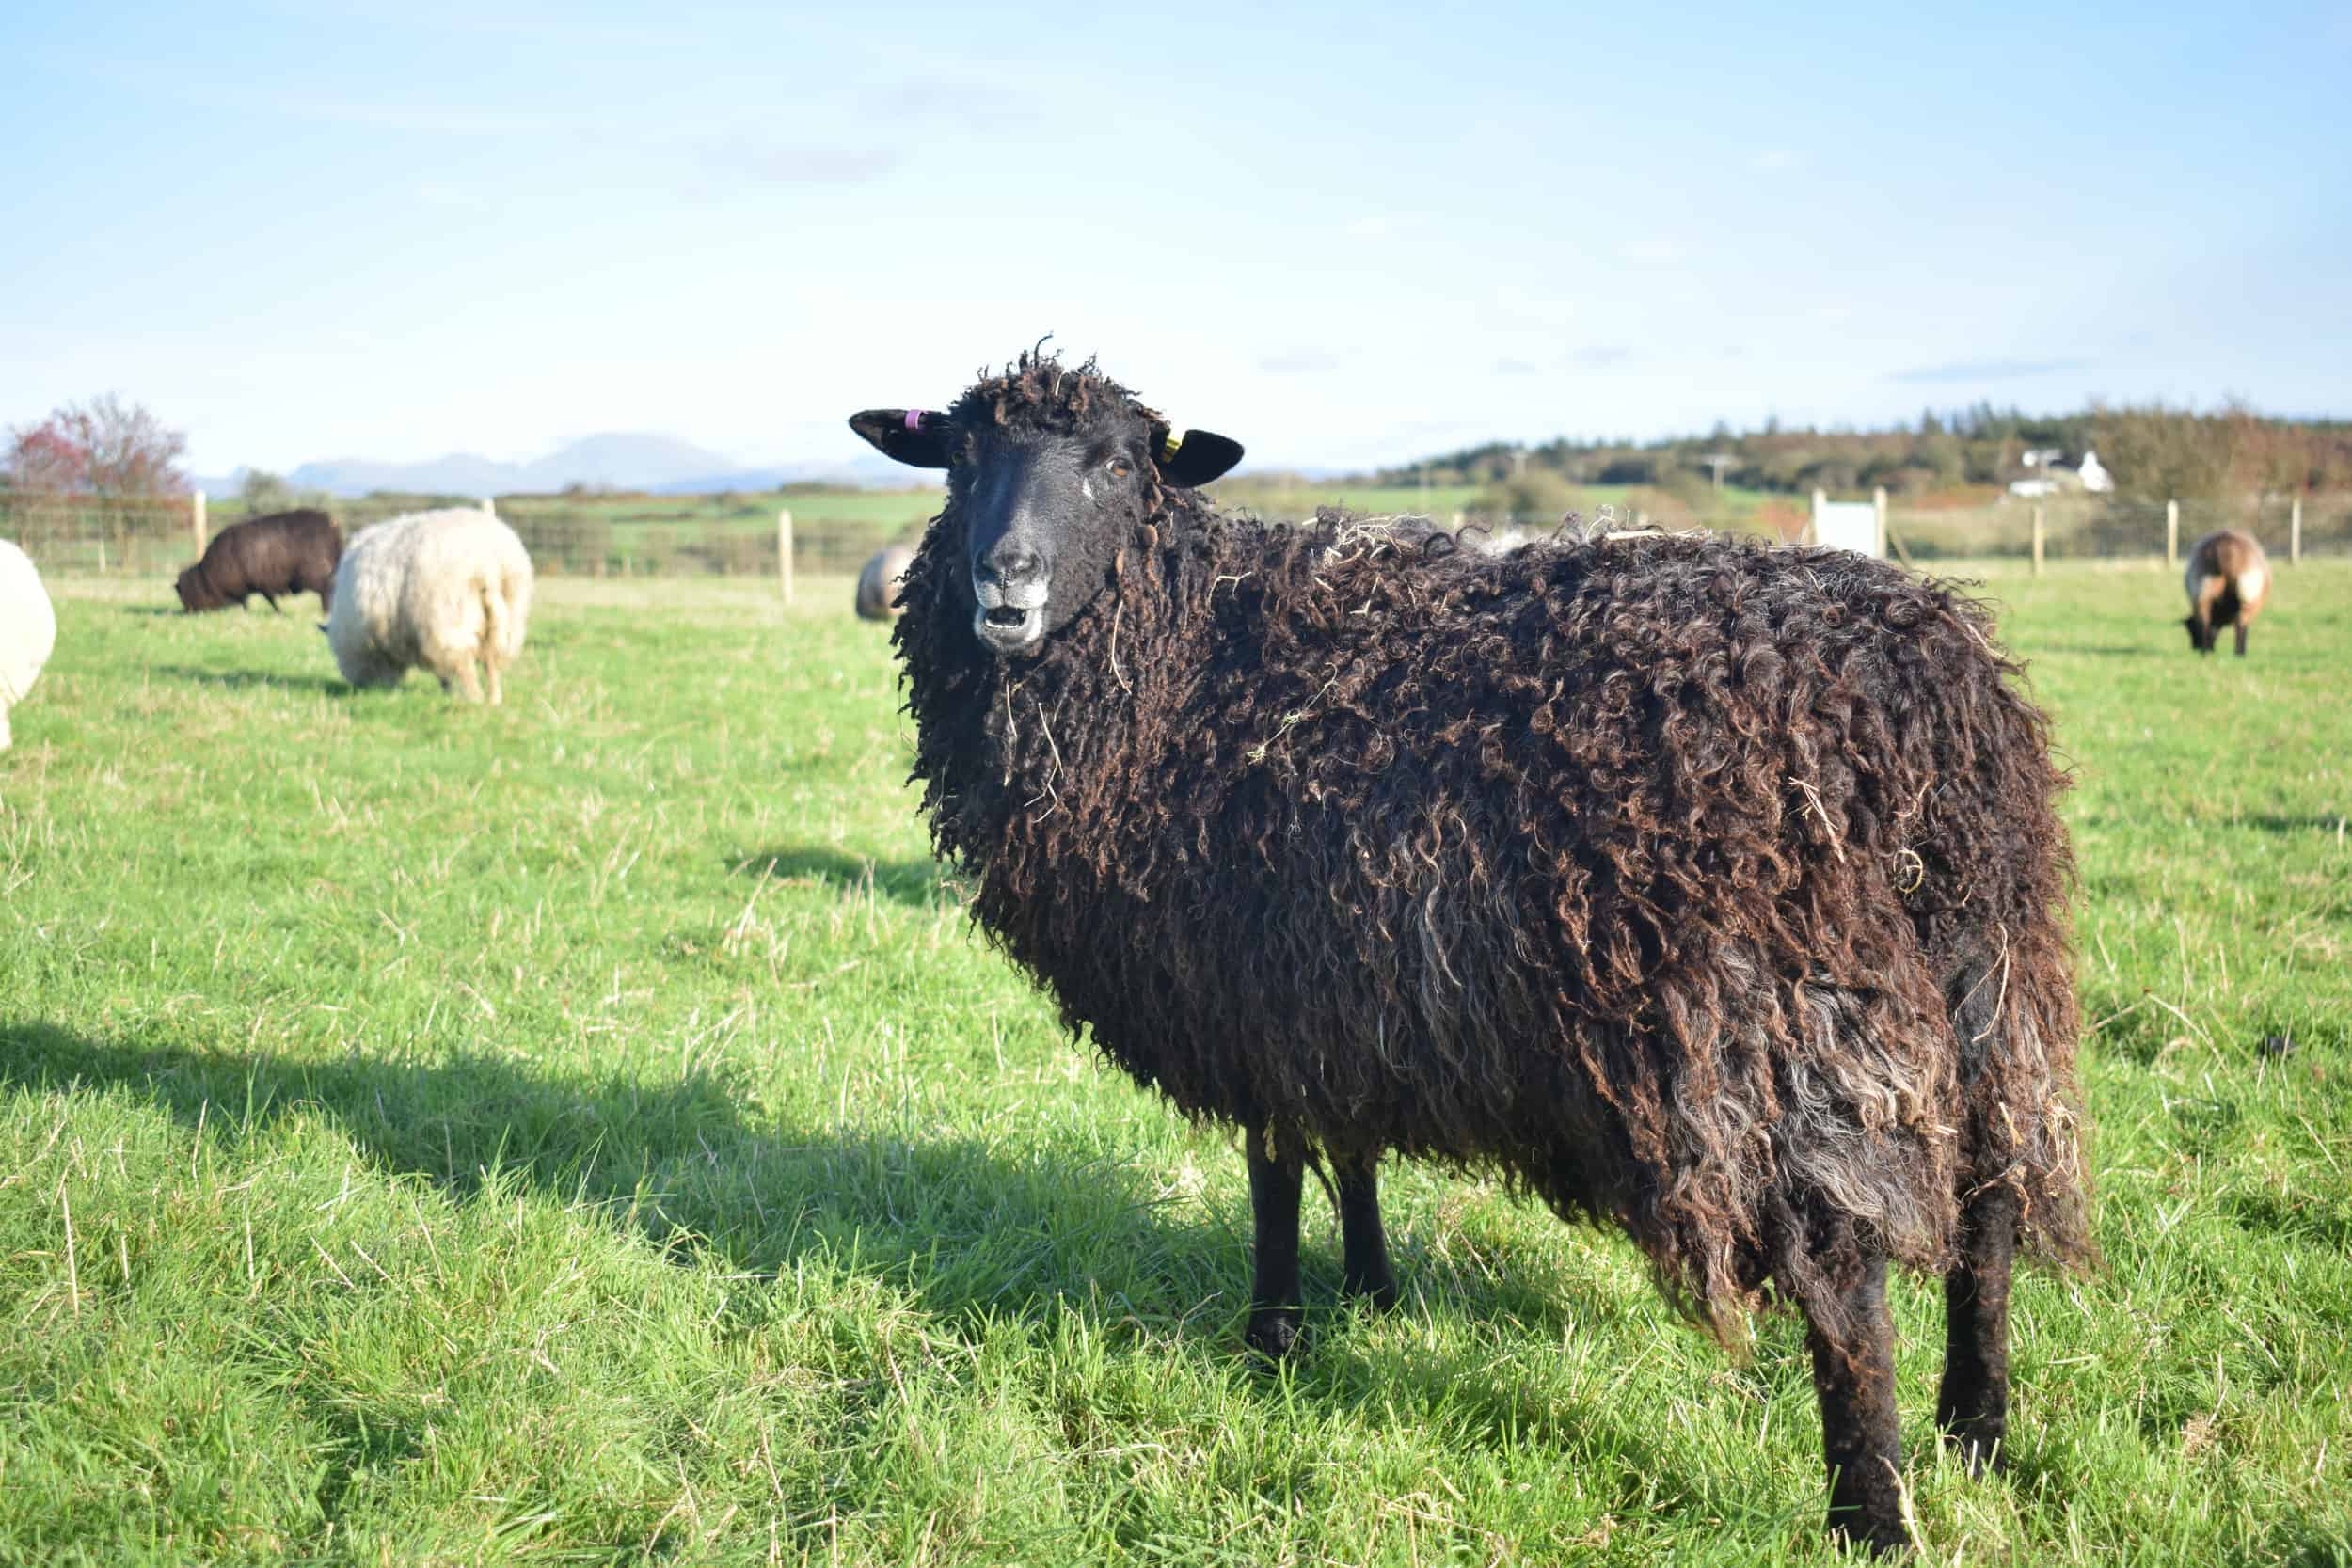 Tatty lamb races coloured leicester longwool shetland gotland sheep ewe lamb kind fibre sheep frendly ethical wool products cross 5